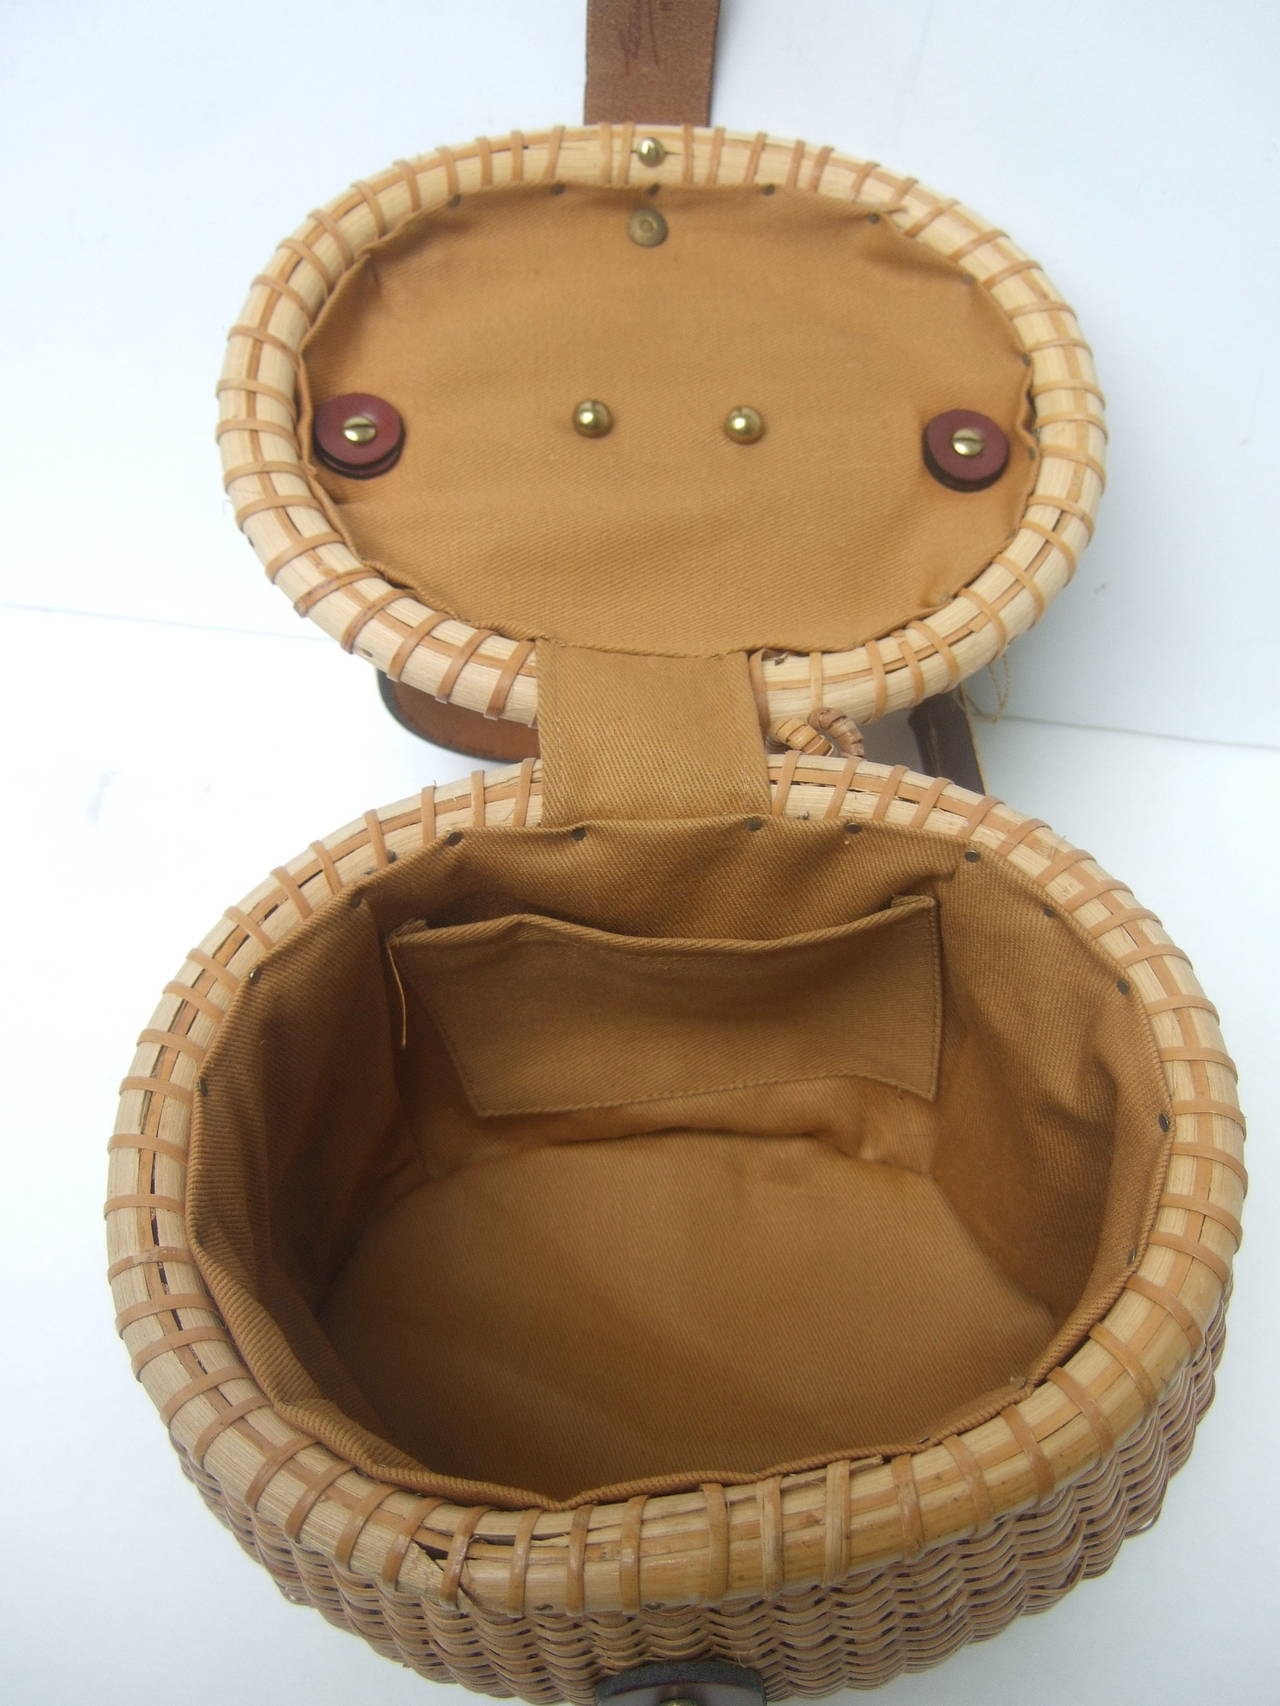 Oval Wicker Basket Equestrian Theme Handbag c 1970s For Sale 4